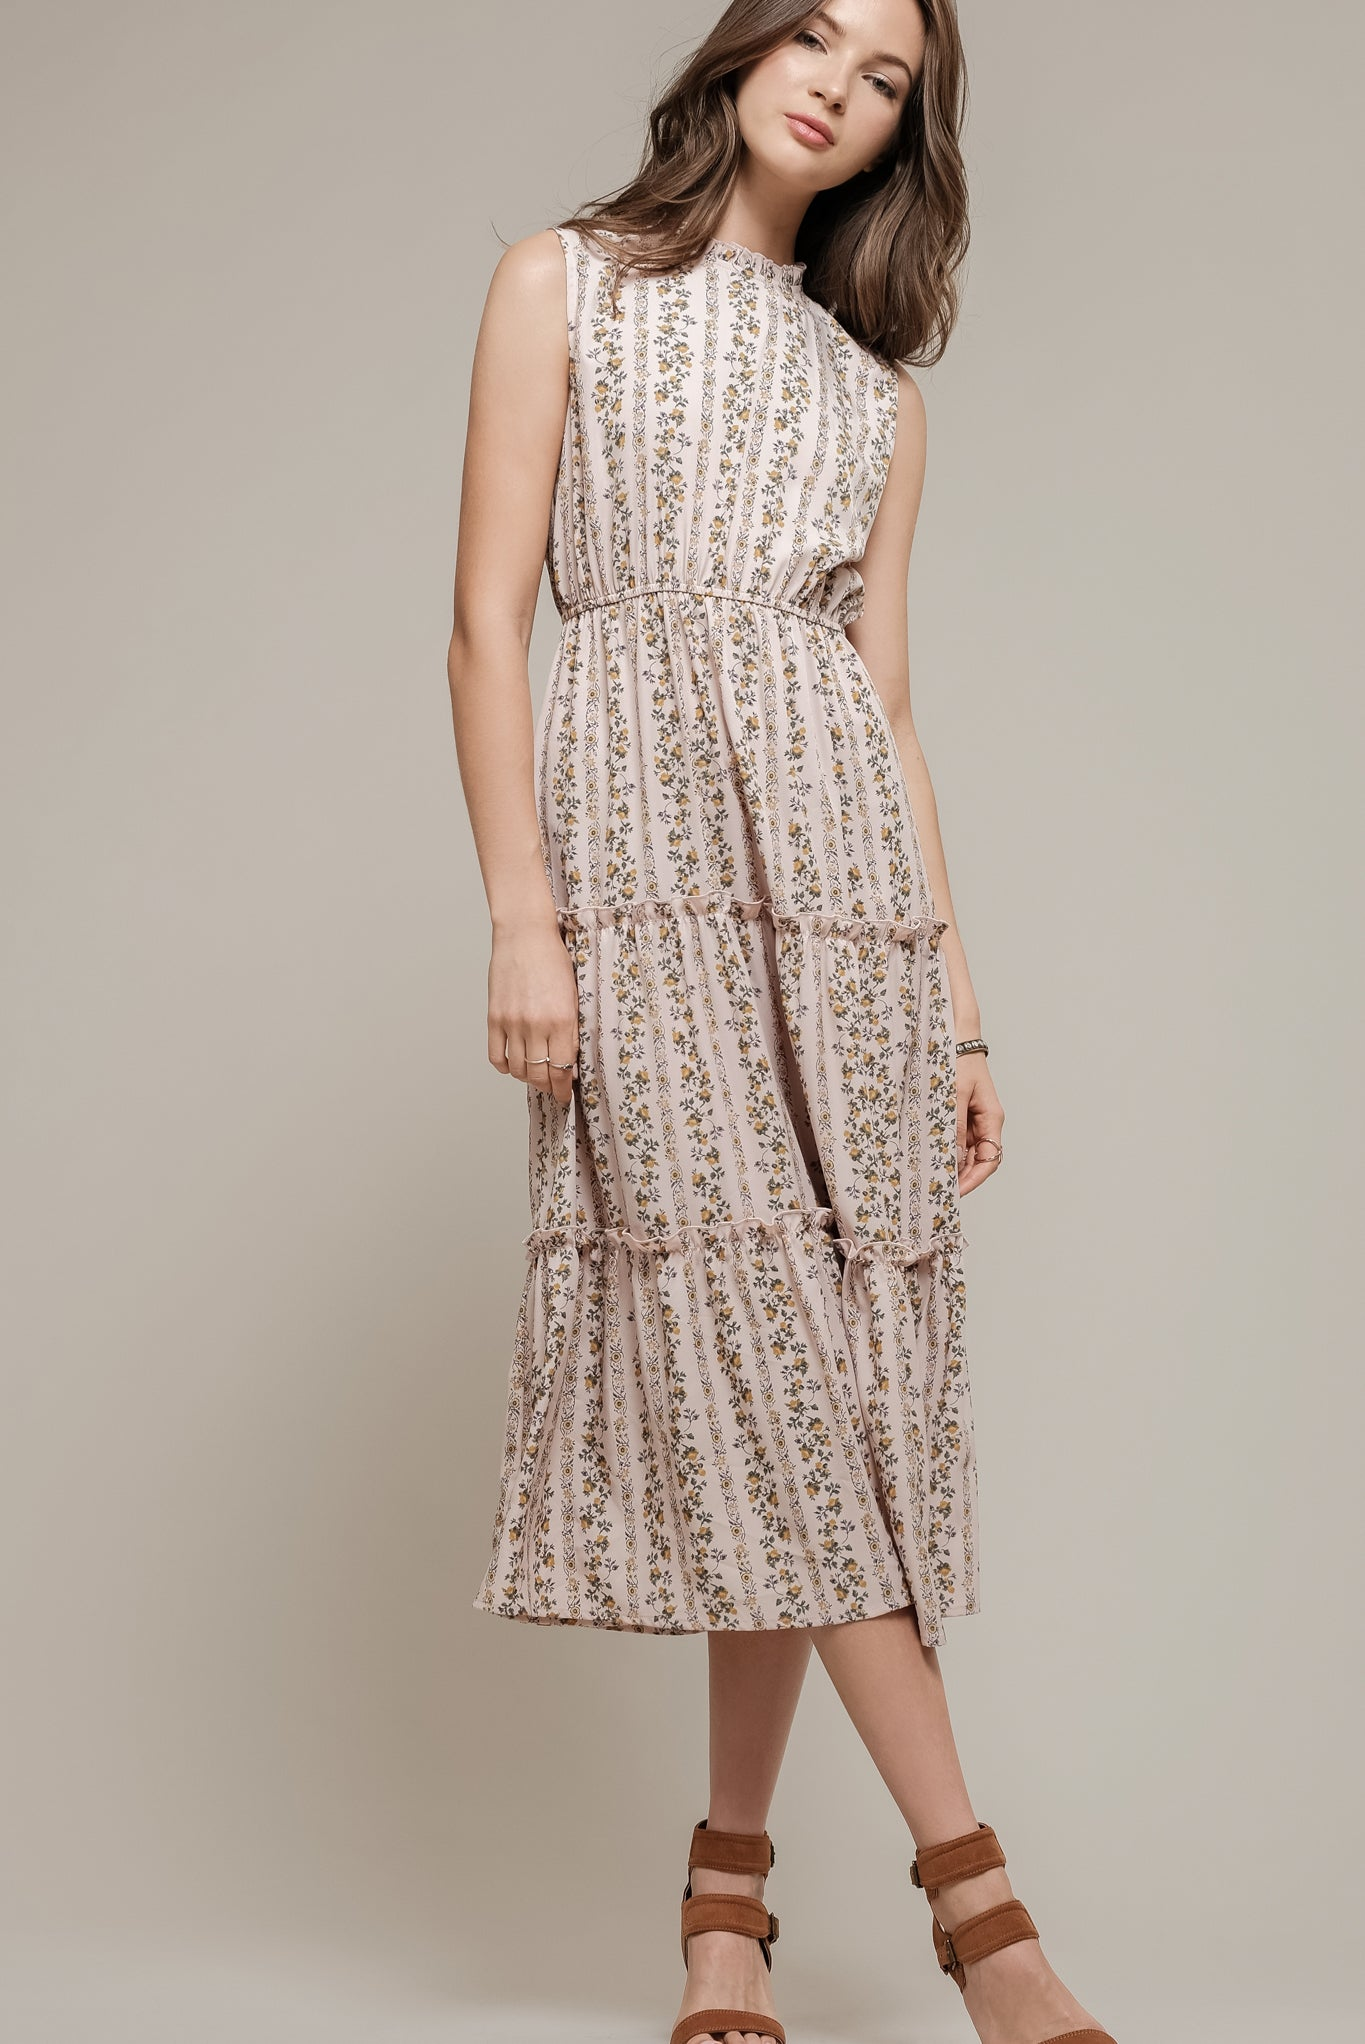 041dd7beeb SLEEVELESS LONG DRESS WITH TIERED SKIRT – Moon River